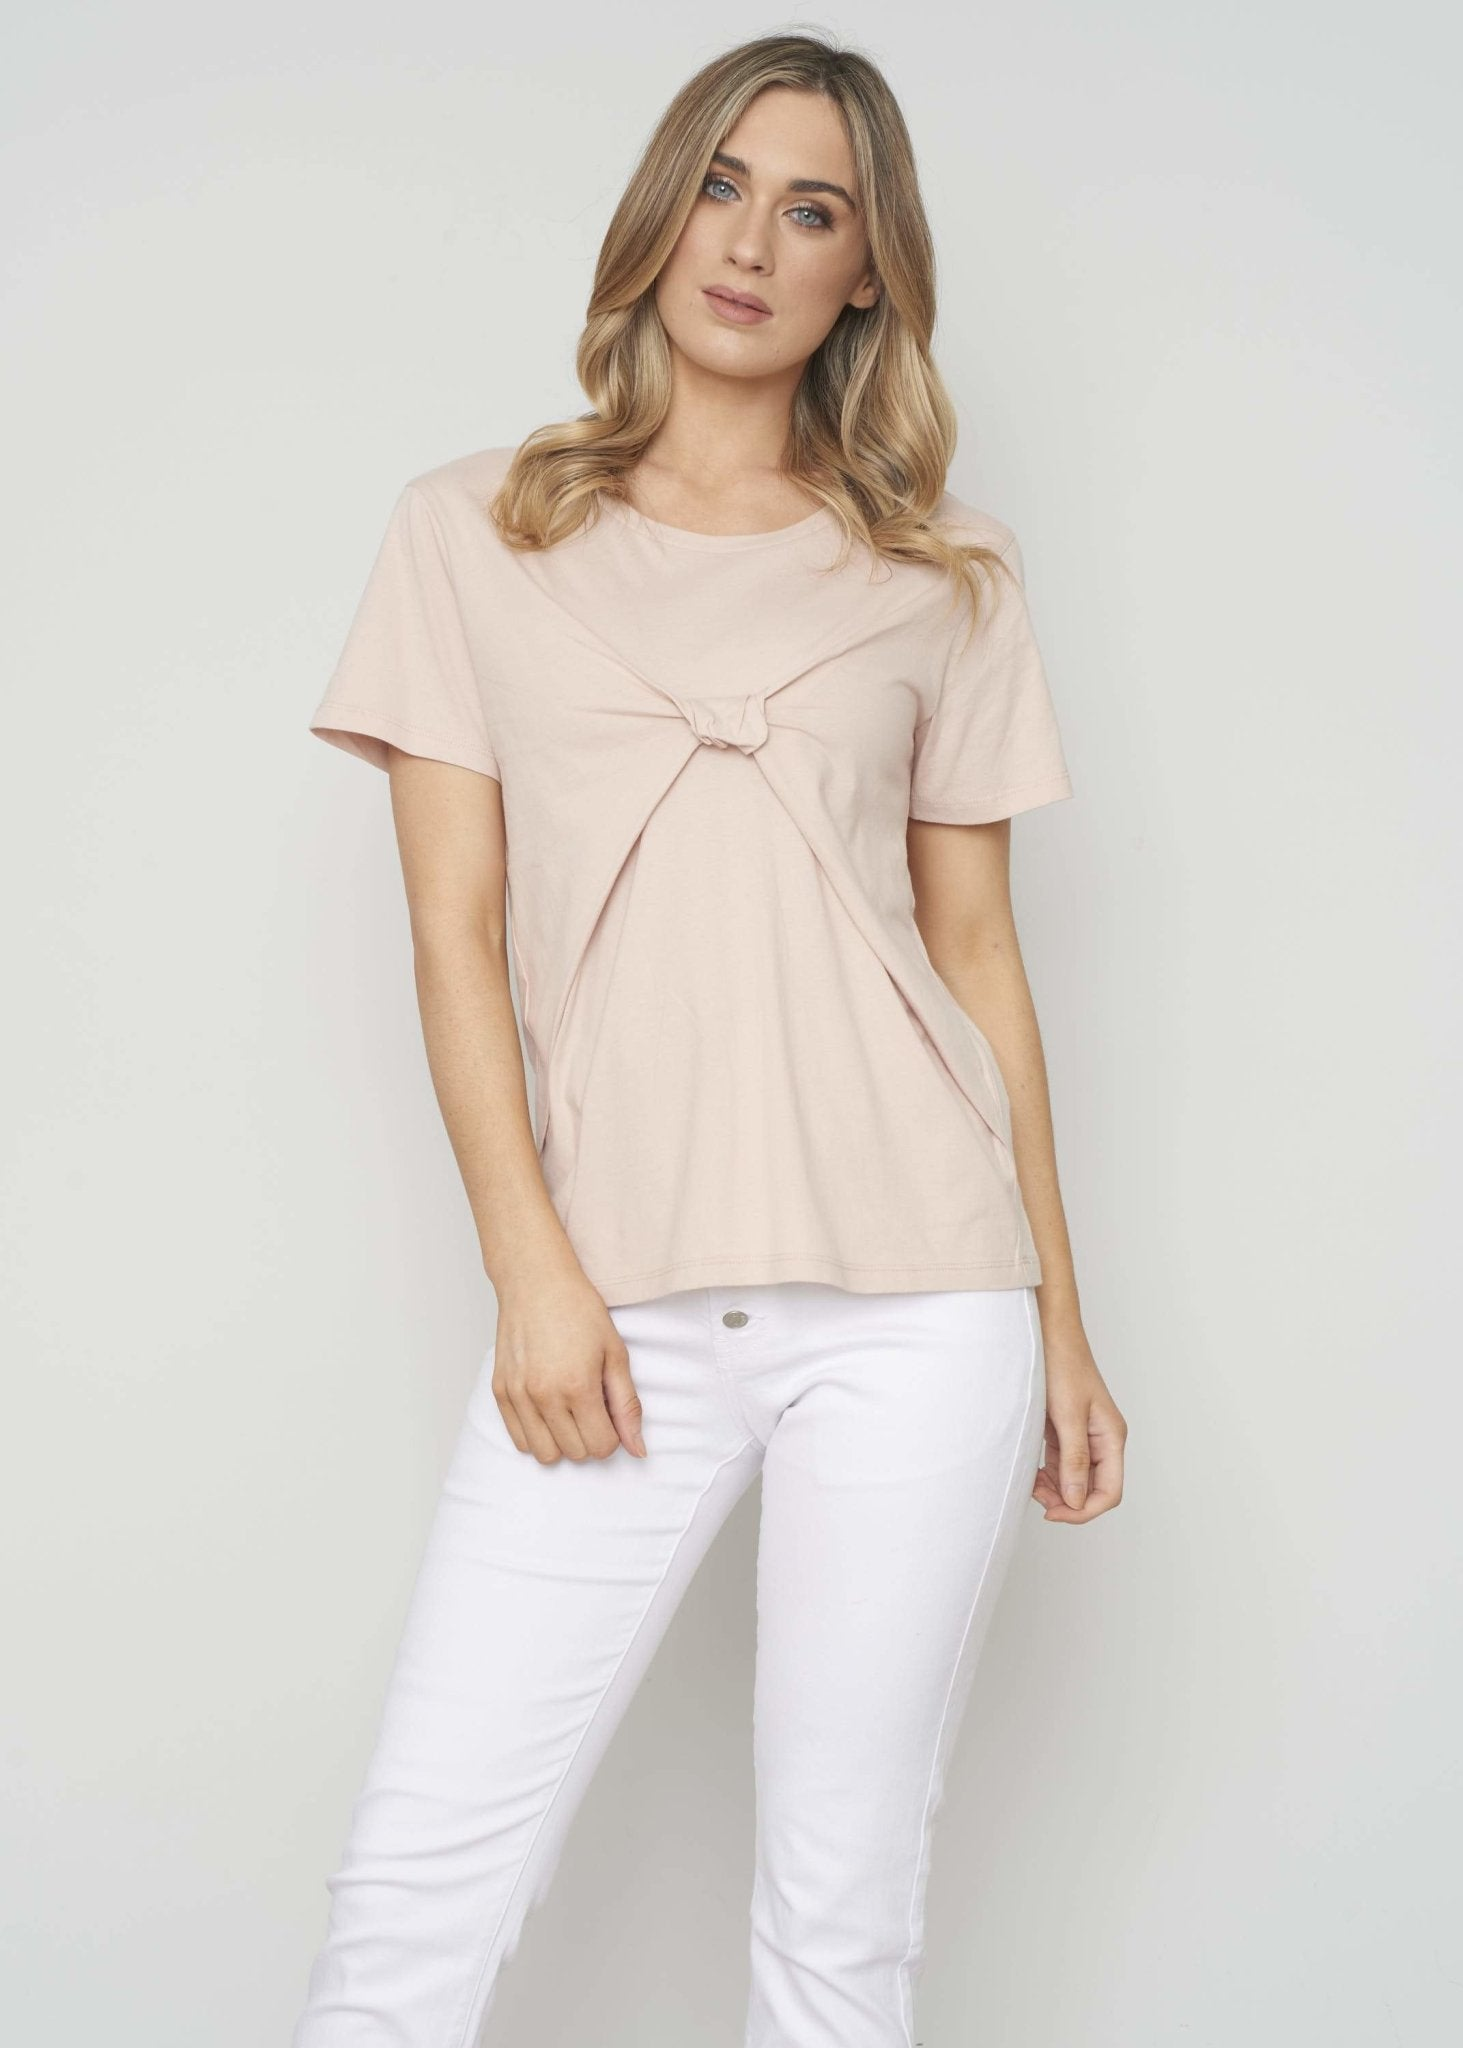 Sophia Knot Front T-Shirt In Blush - The Walk in Wardrobe